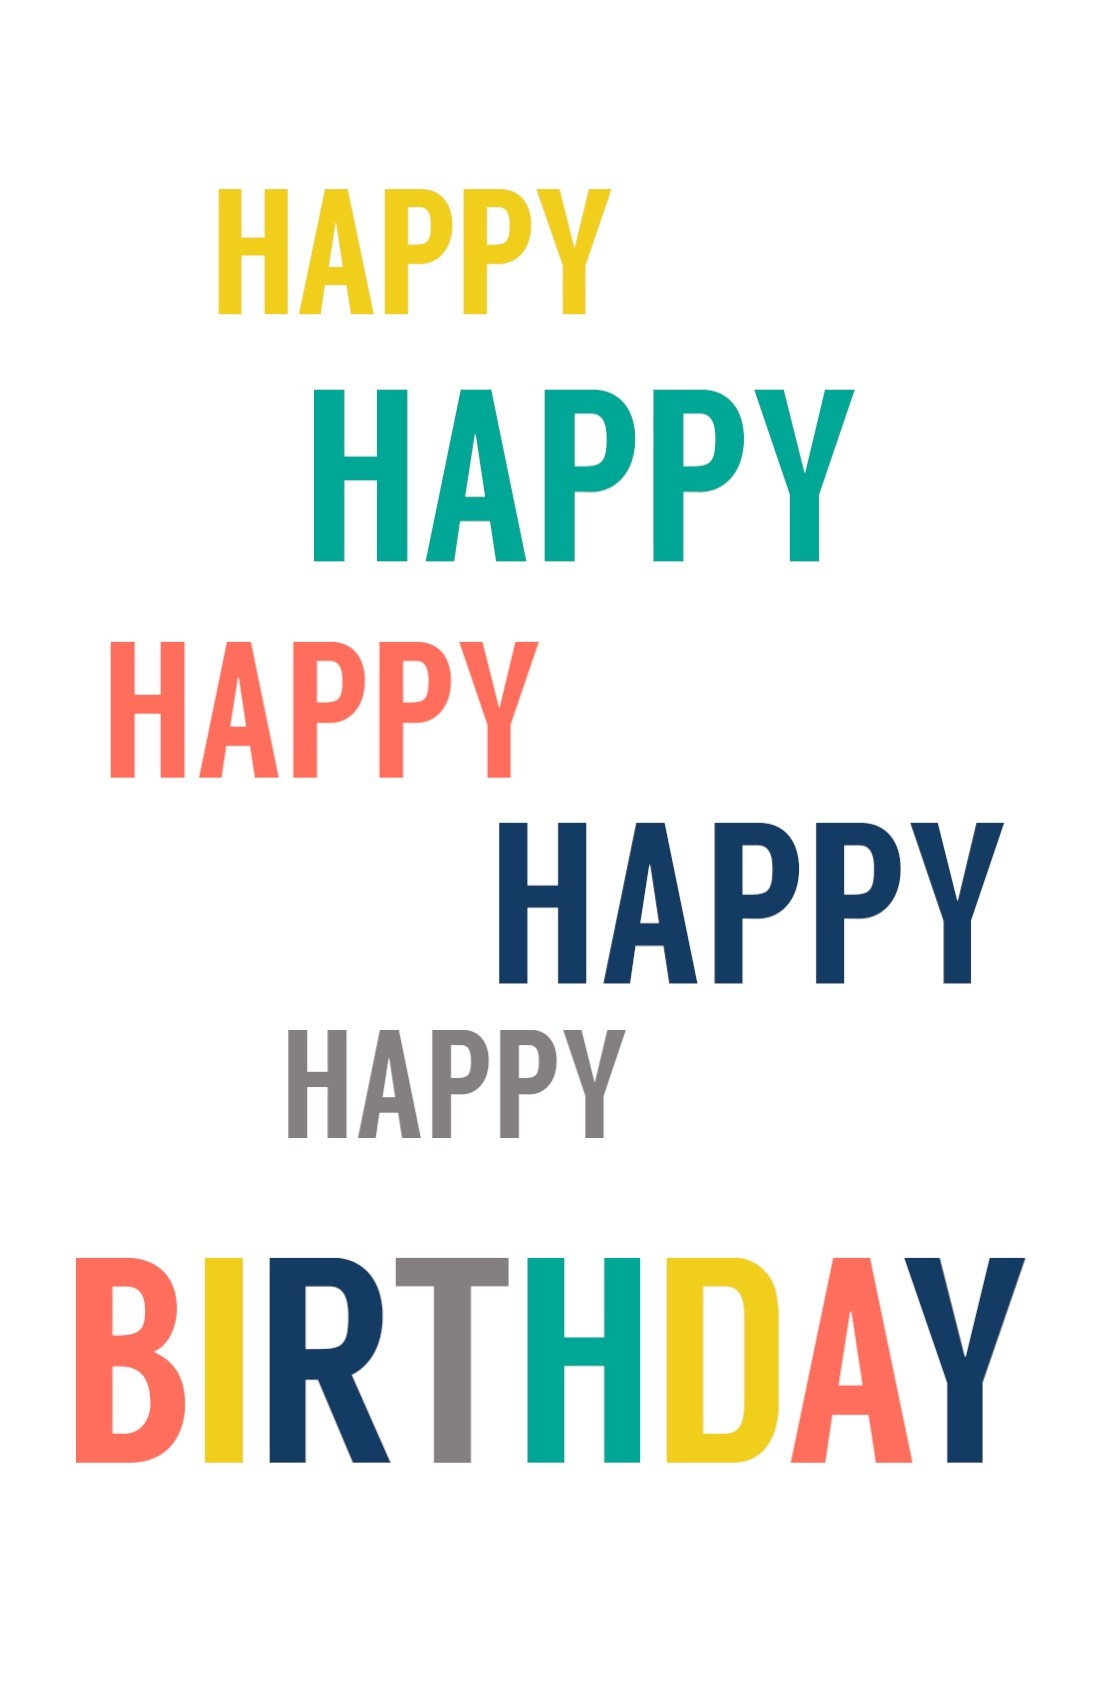 Free Printable Birthday Cards - Paper Trail Design - Free Printable Greeting Cards No Sign Up